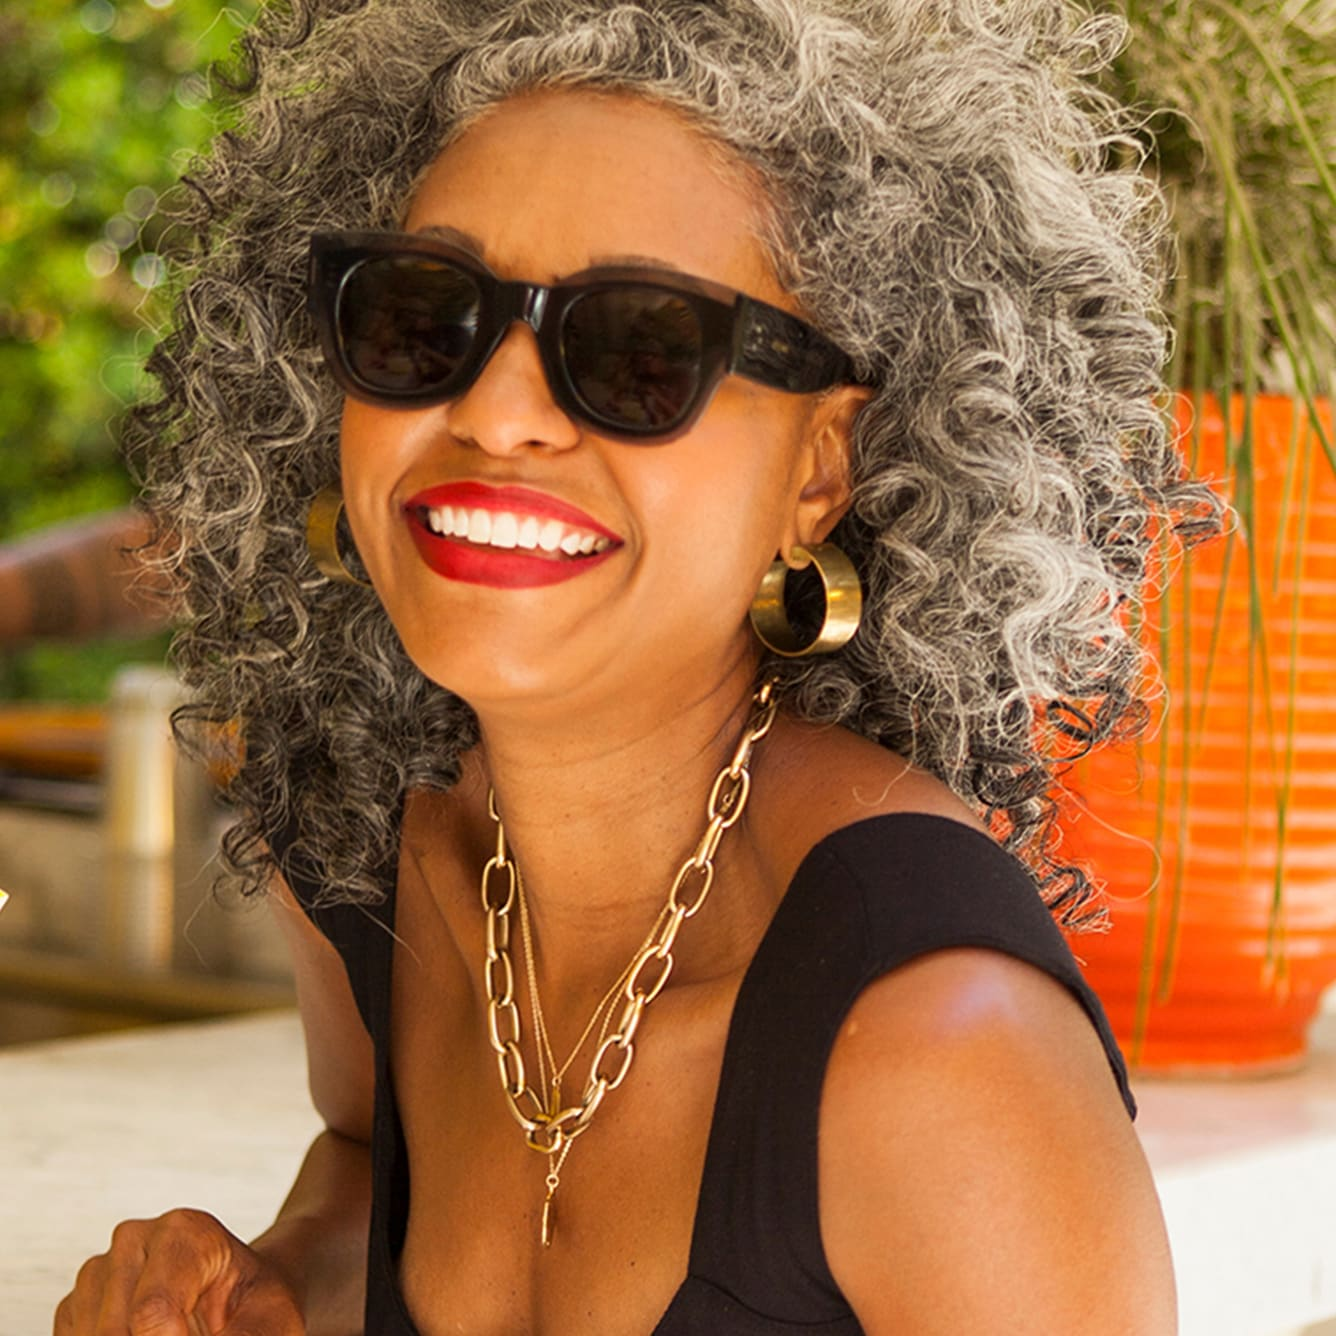 woman with silver curly hair smiling and wearing sunglasses